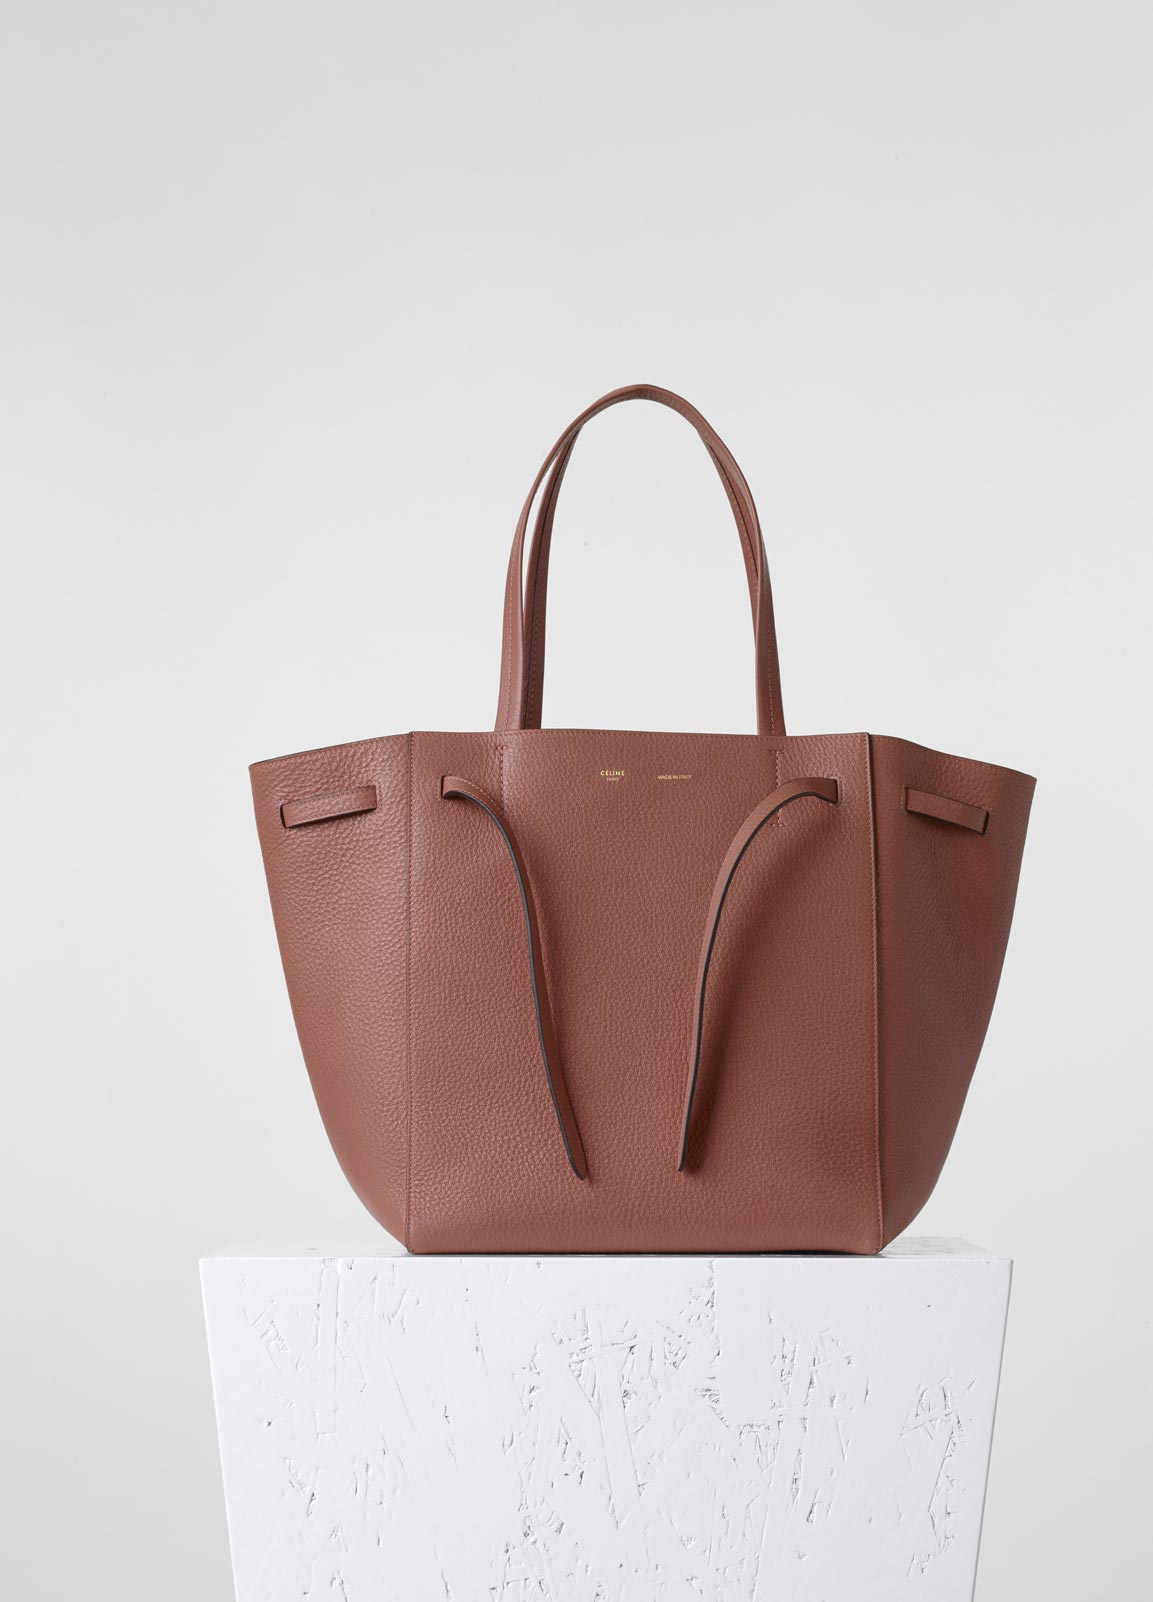 Celine Pre-Fall 2015 Bag Collection featuring new Sangle ...